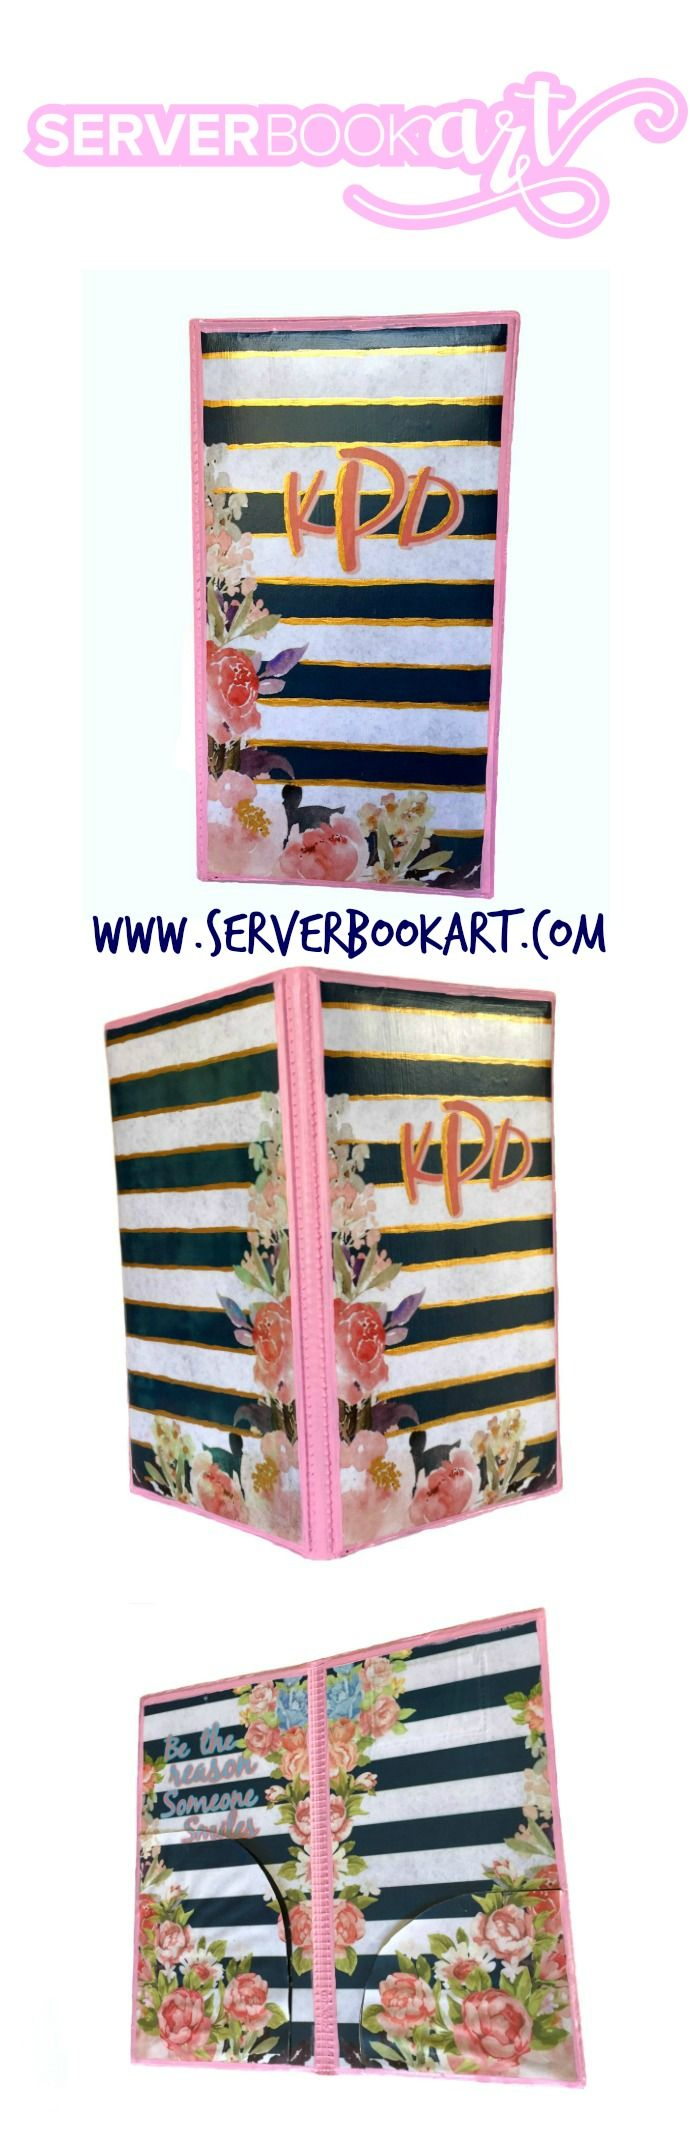 Monogram Server Book by Server Book Art Waitress book #waitressbook #serverbook